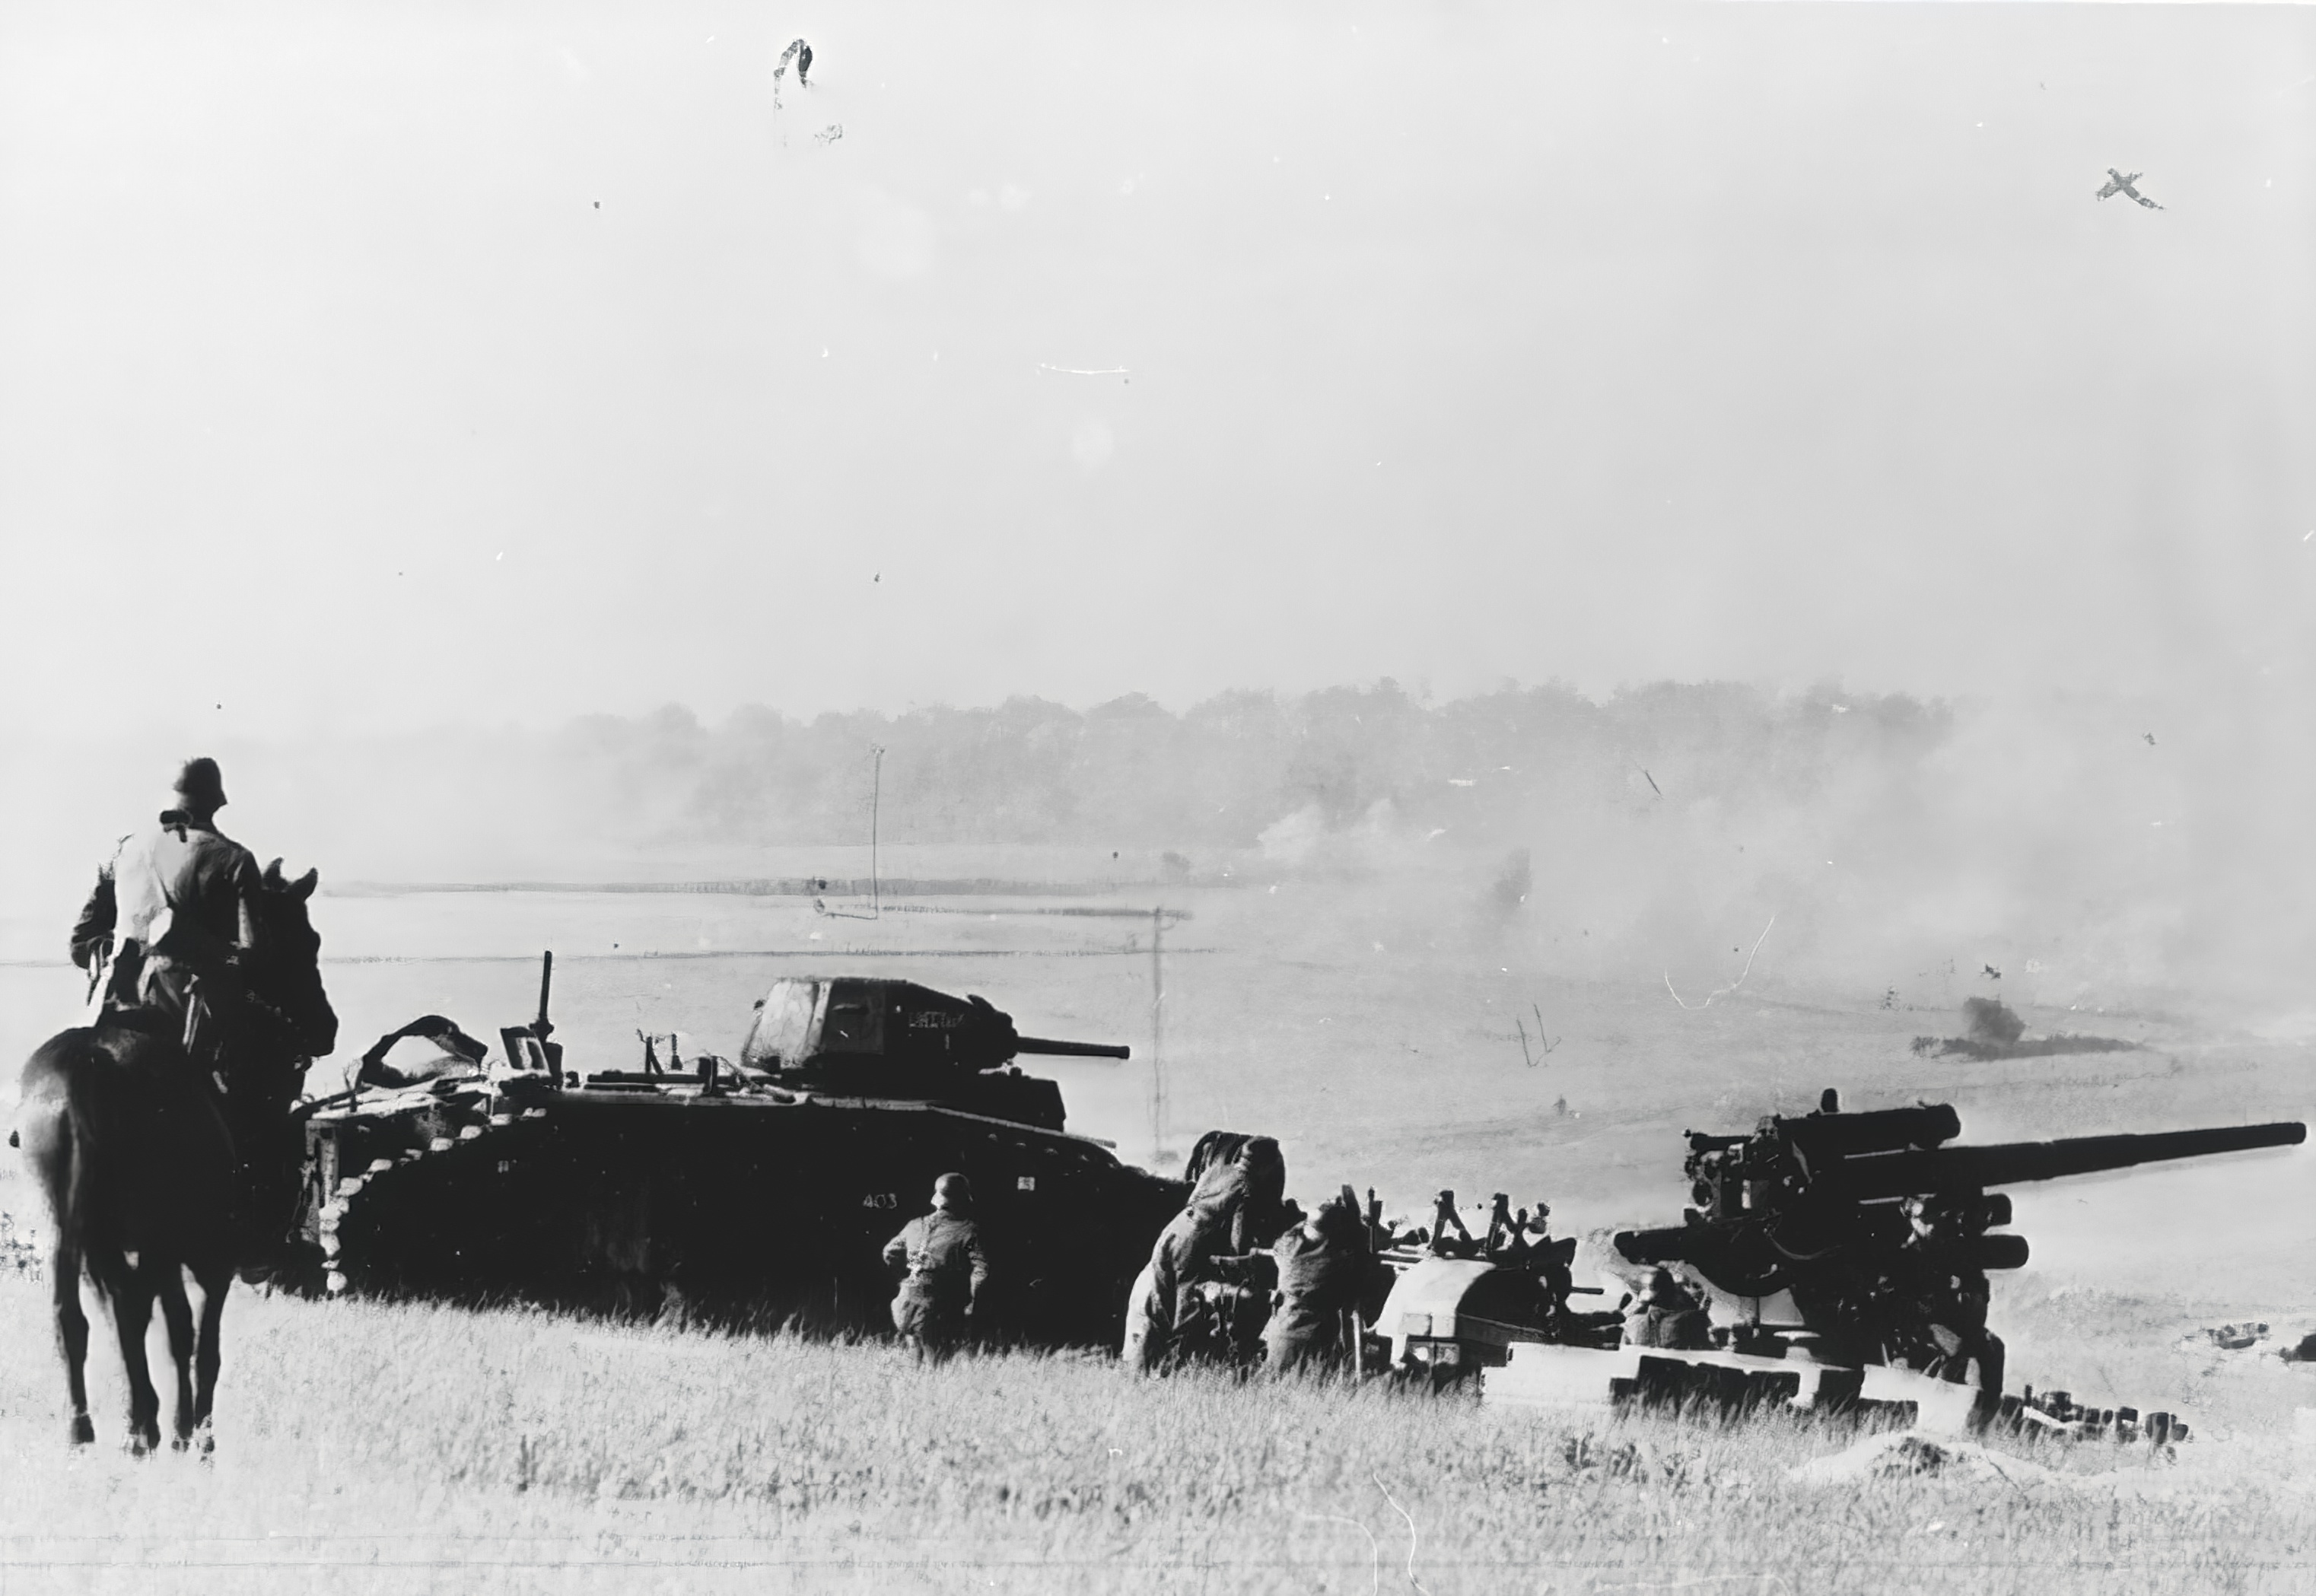 French Army Renault Char B1 knocked out by German forces advancing near La Pouge France 11th Jun 1940 NIOD